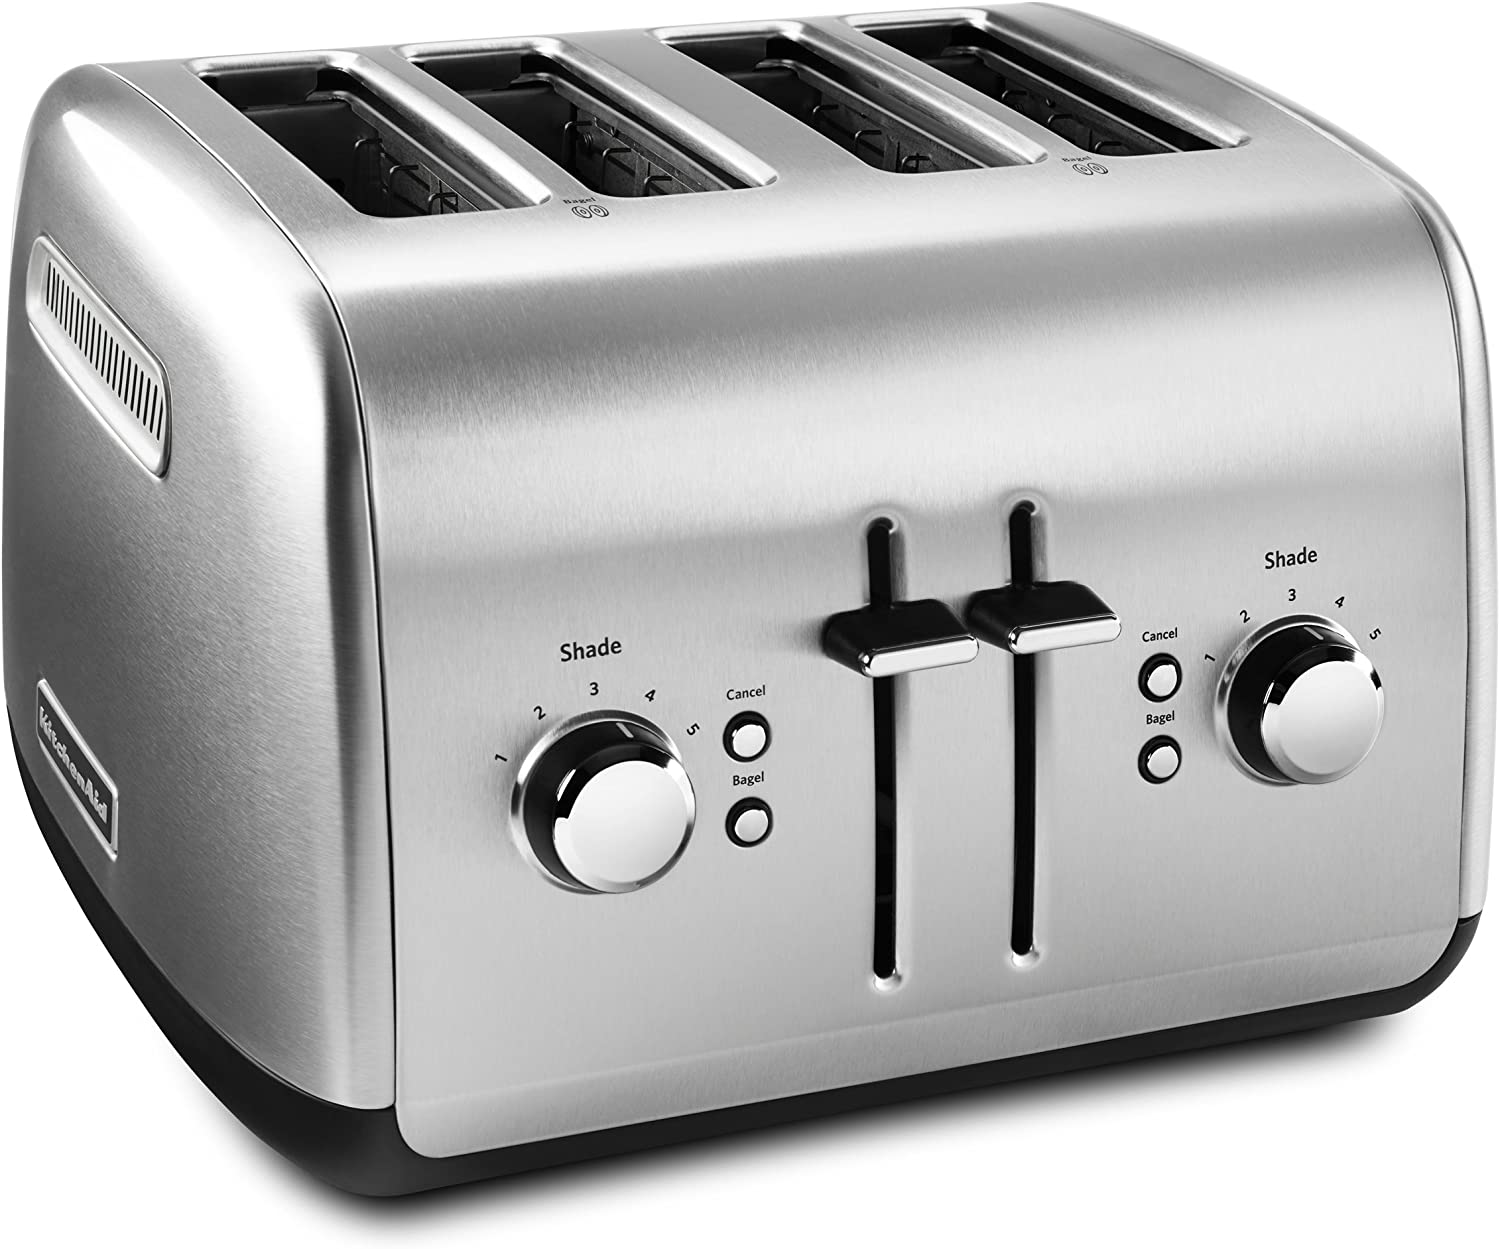 Review of KitchenAid KMT4115SX Stainless Steel Toaster, Brushed Stainless Steel